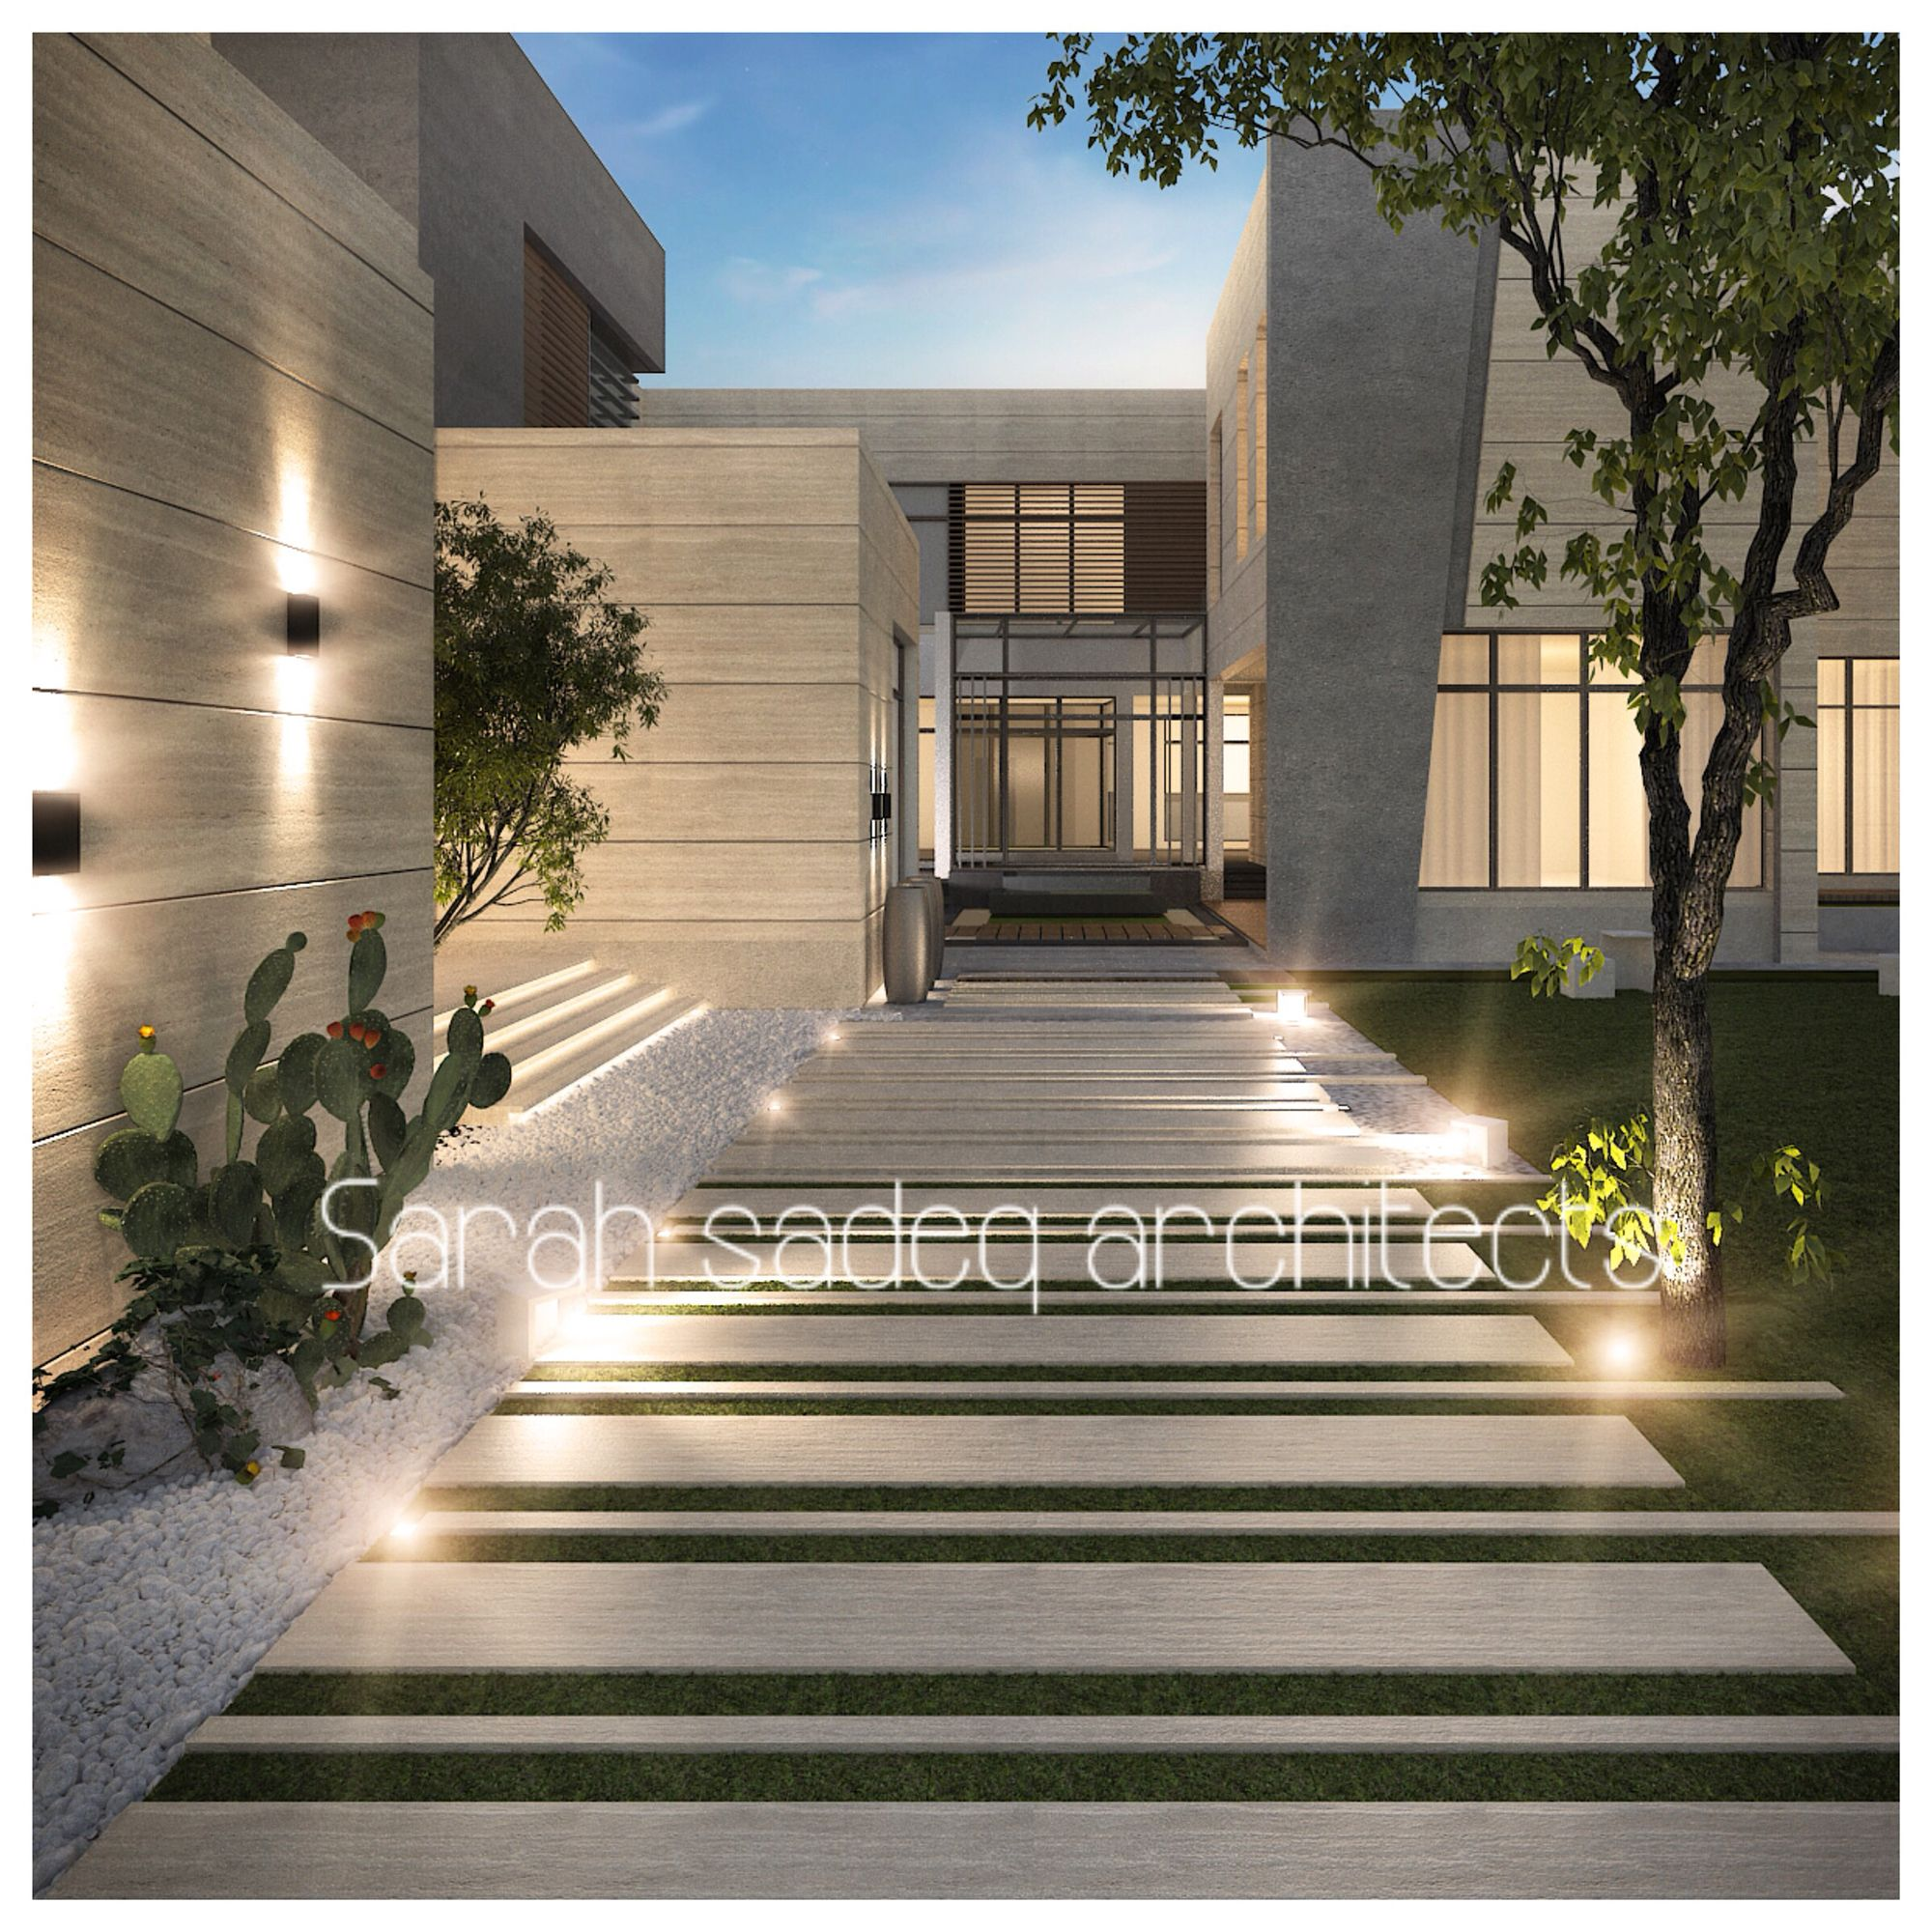 Armani Casa Has A New House Designed By Cesar Pelli: Abudahbi Landscaping , Private Villa Uae By Sarah Sadeq